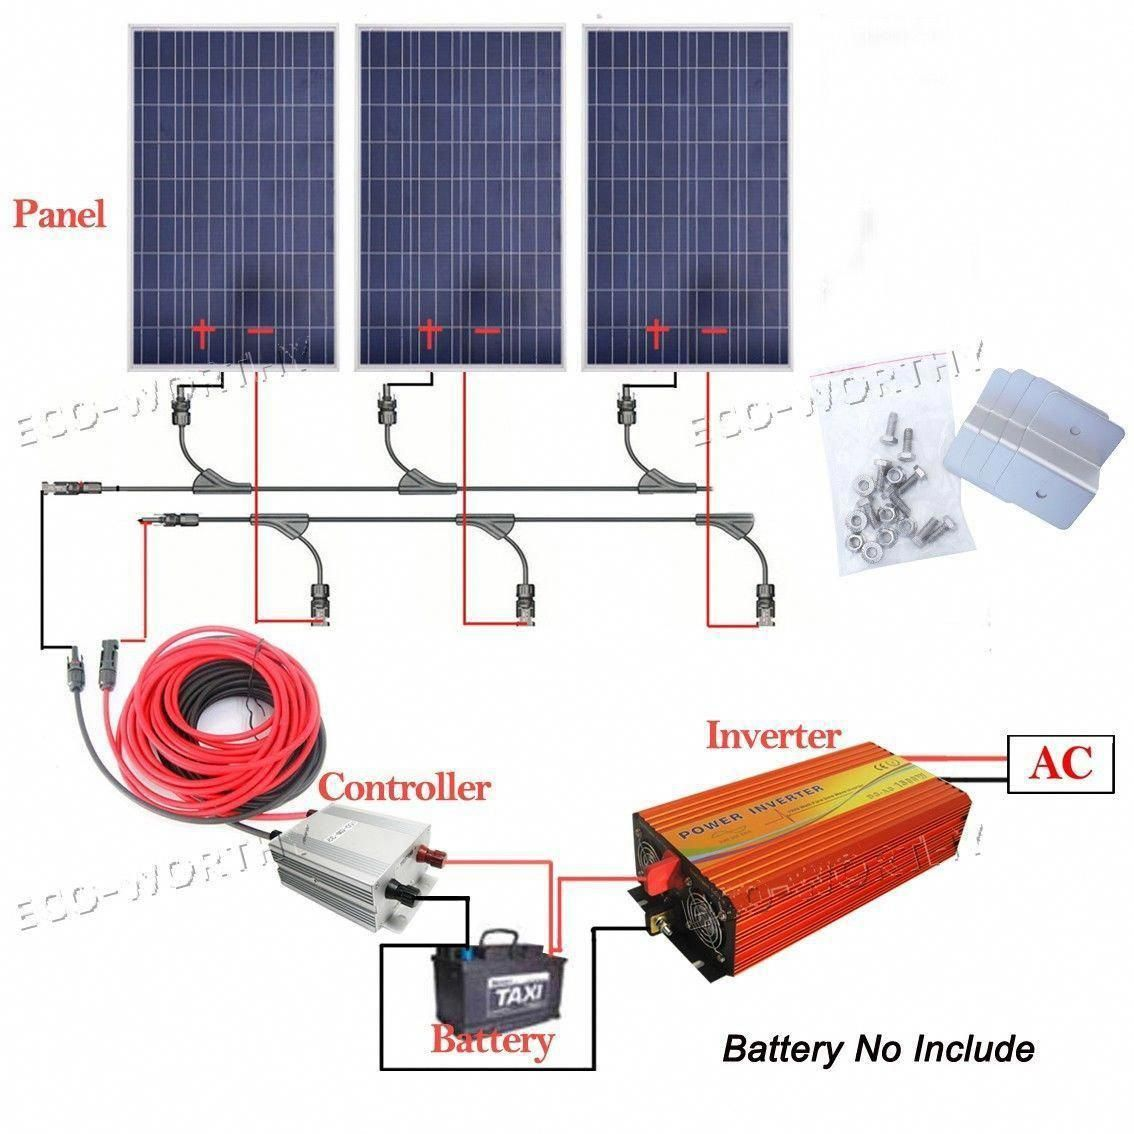 200w 300w 400w 800w Off Grid System 100w Solar Panel W 1kw 1500w 3000w Inverter In Home Garden Home Improvement Electrical Solar Ebay Solarpowersystem In 2020